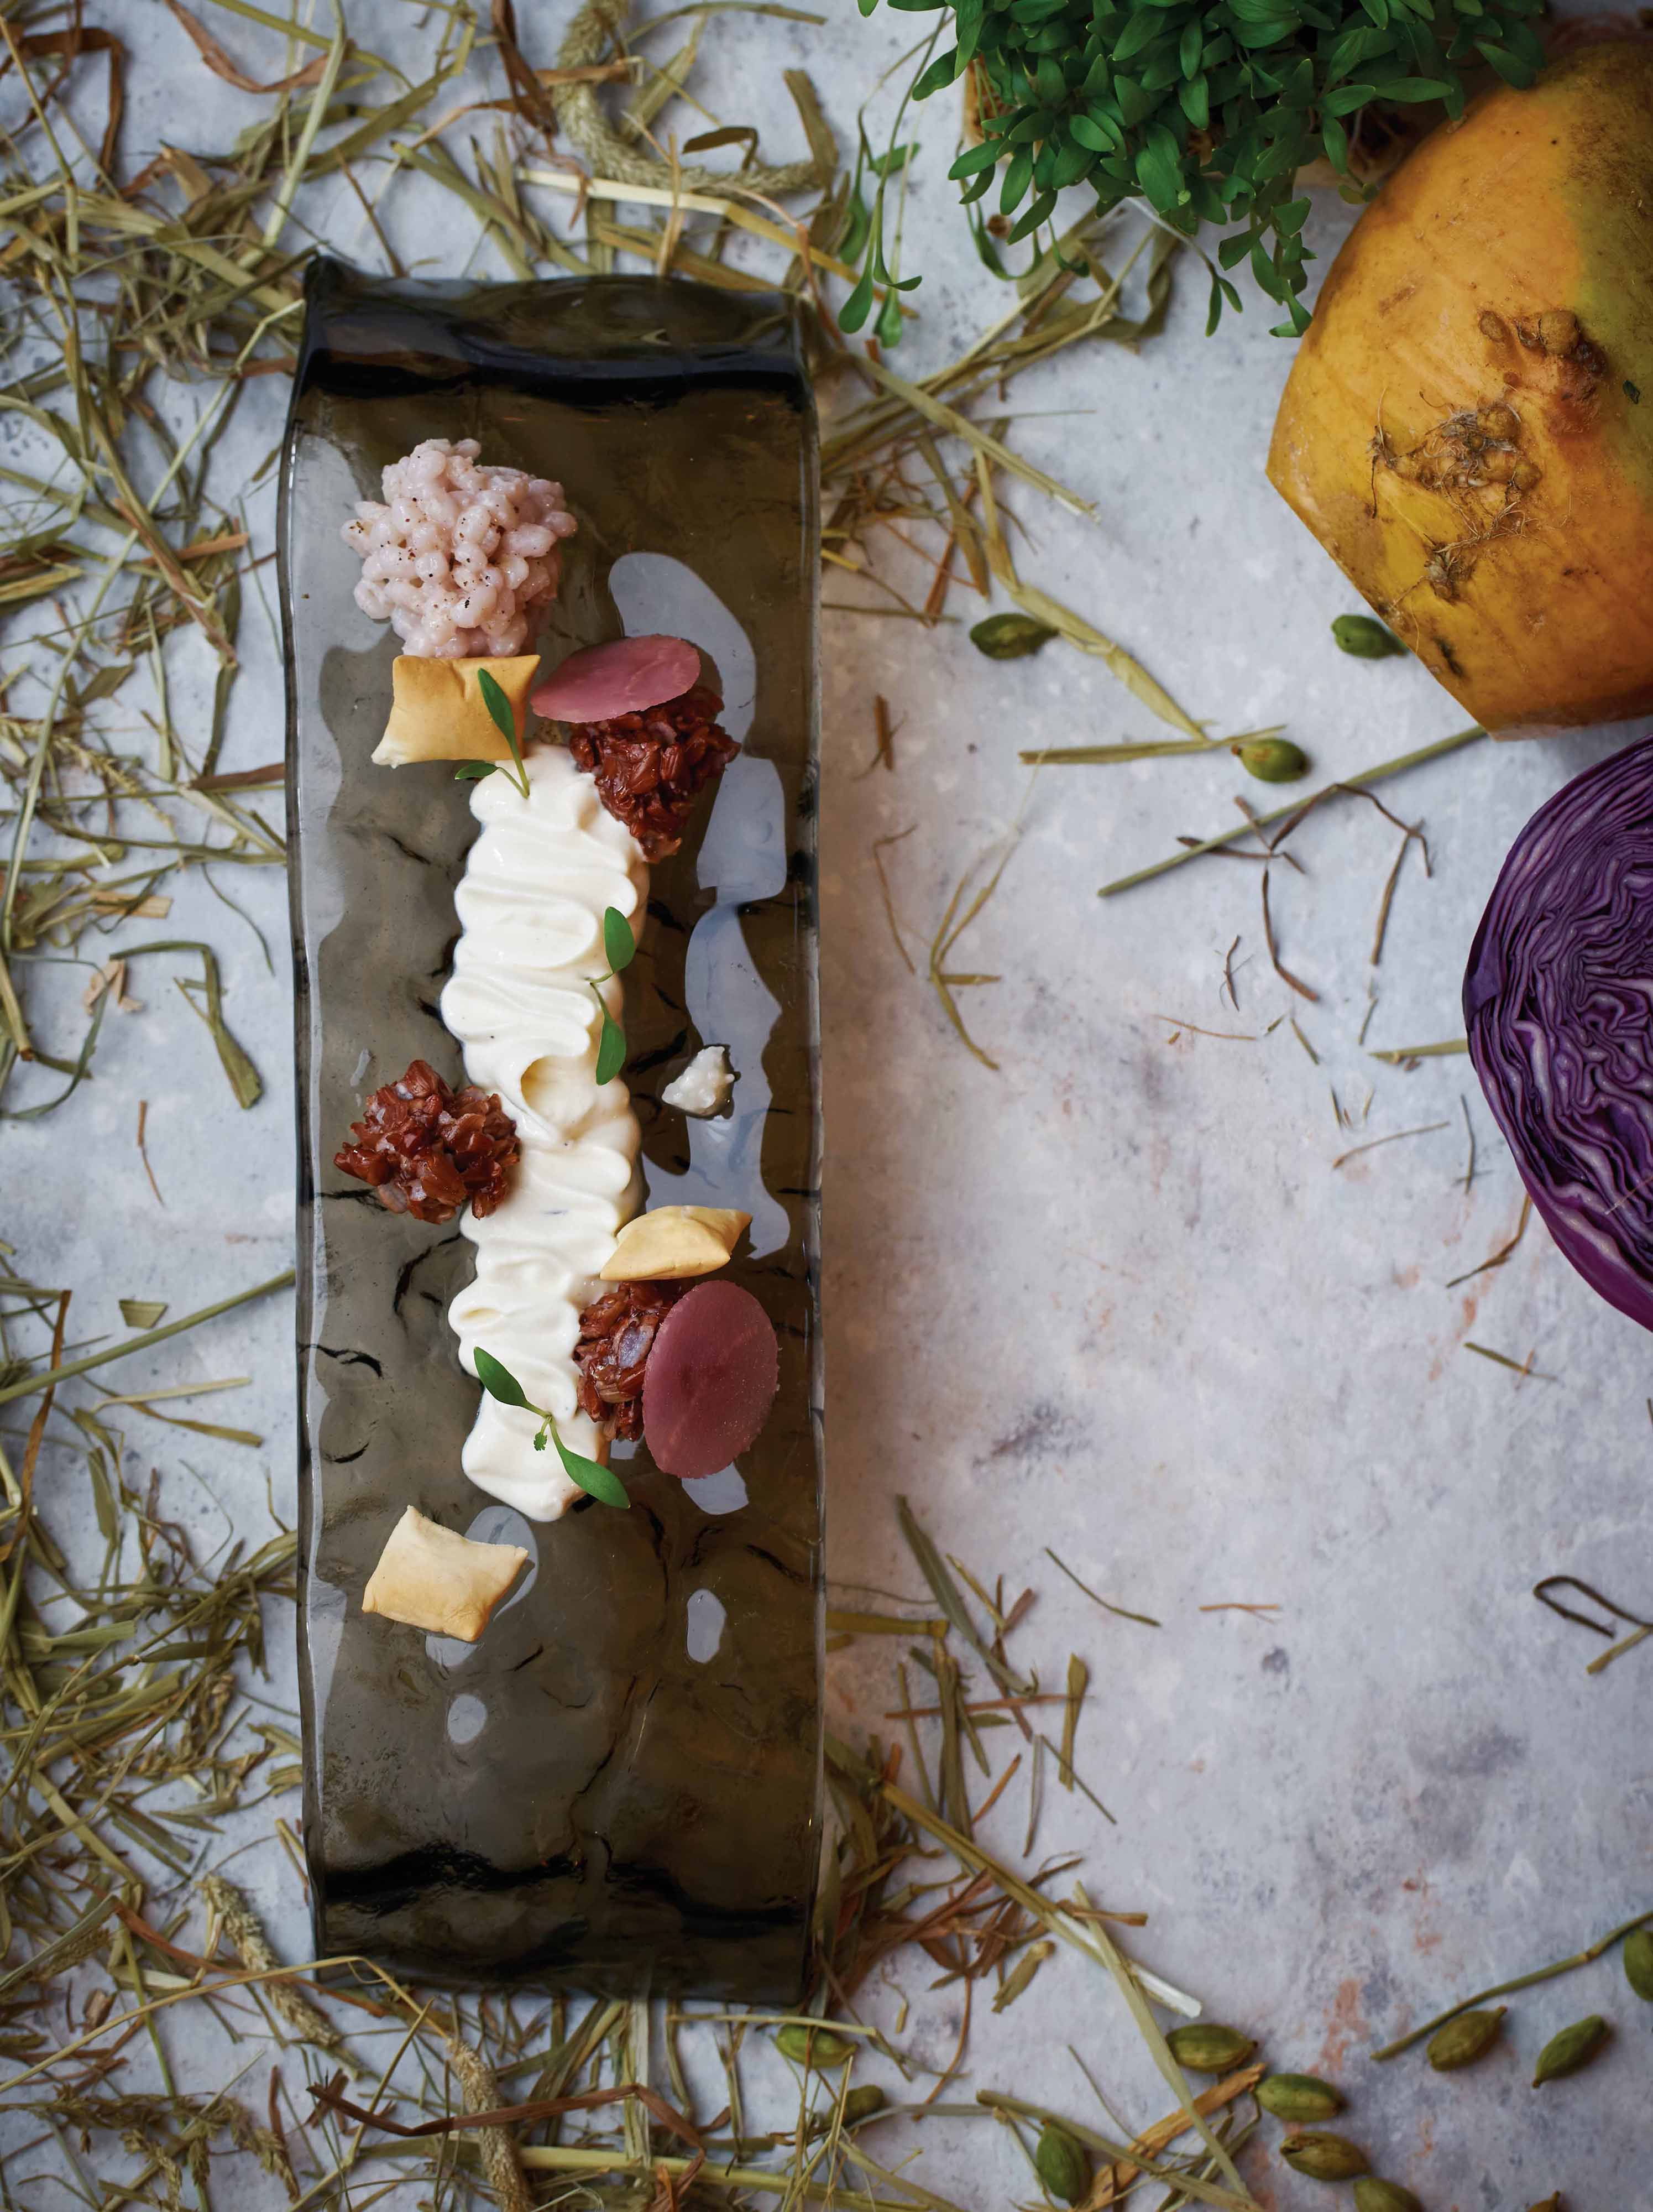 Ricotta and red rice by chef Daniele Sperindio of Atlas (photo by Ching/GreenPlasticSoldiers)